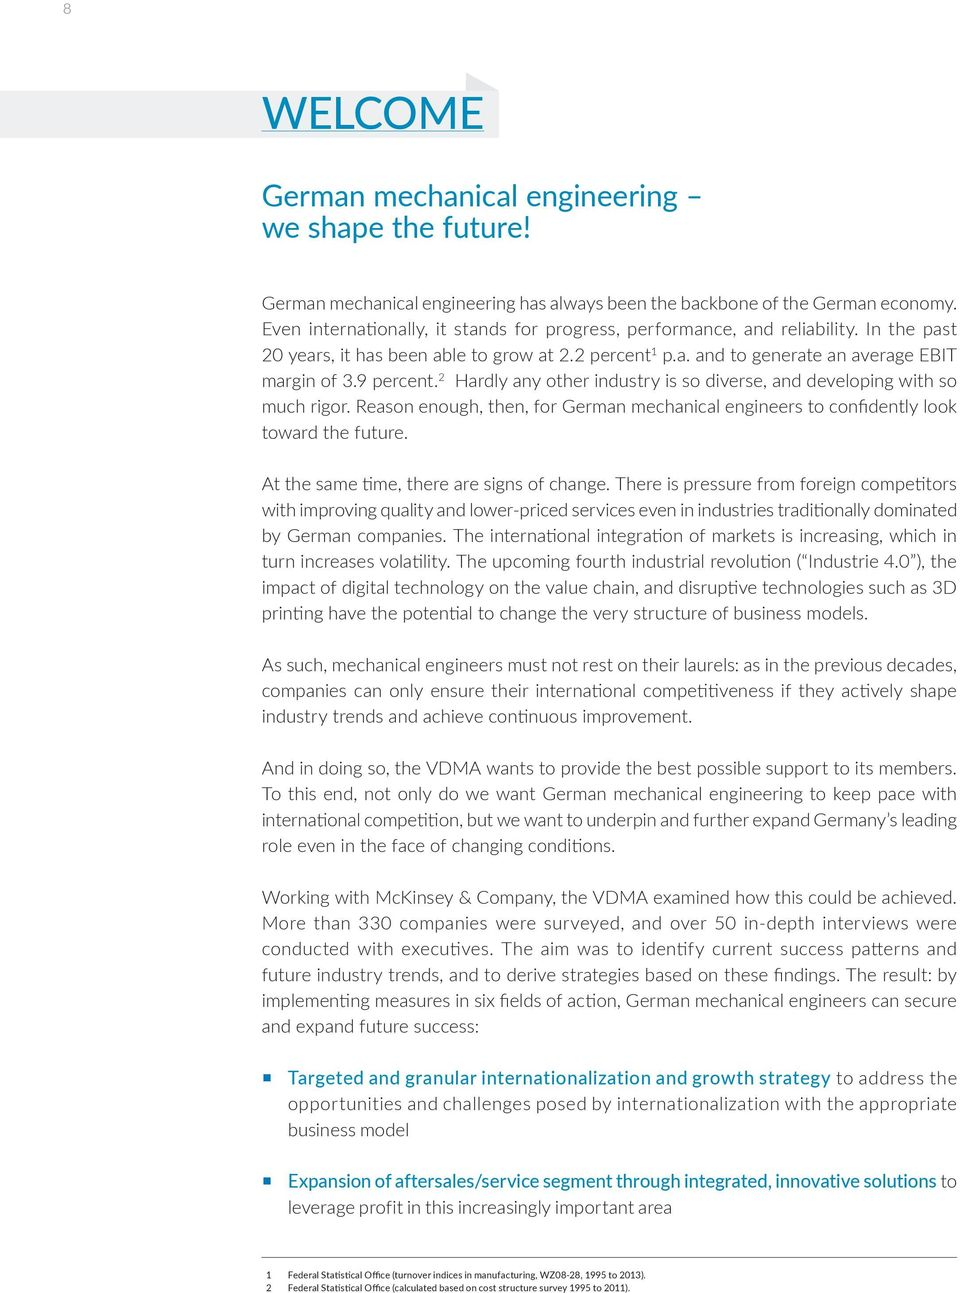 The future of German mechanical engineering  Operating